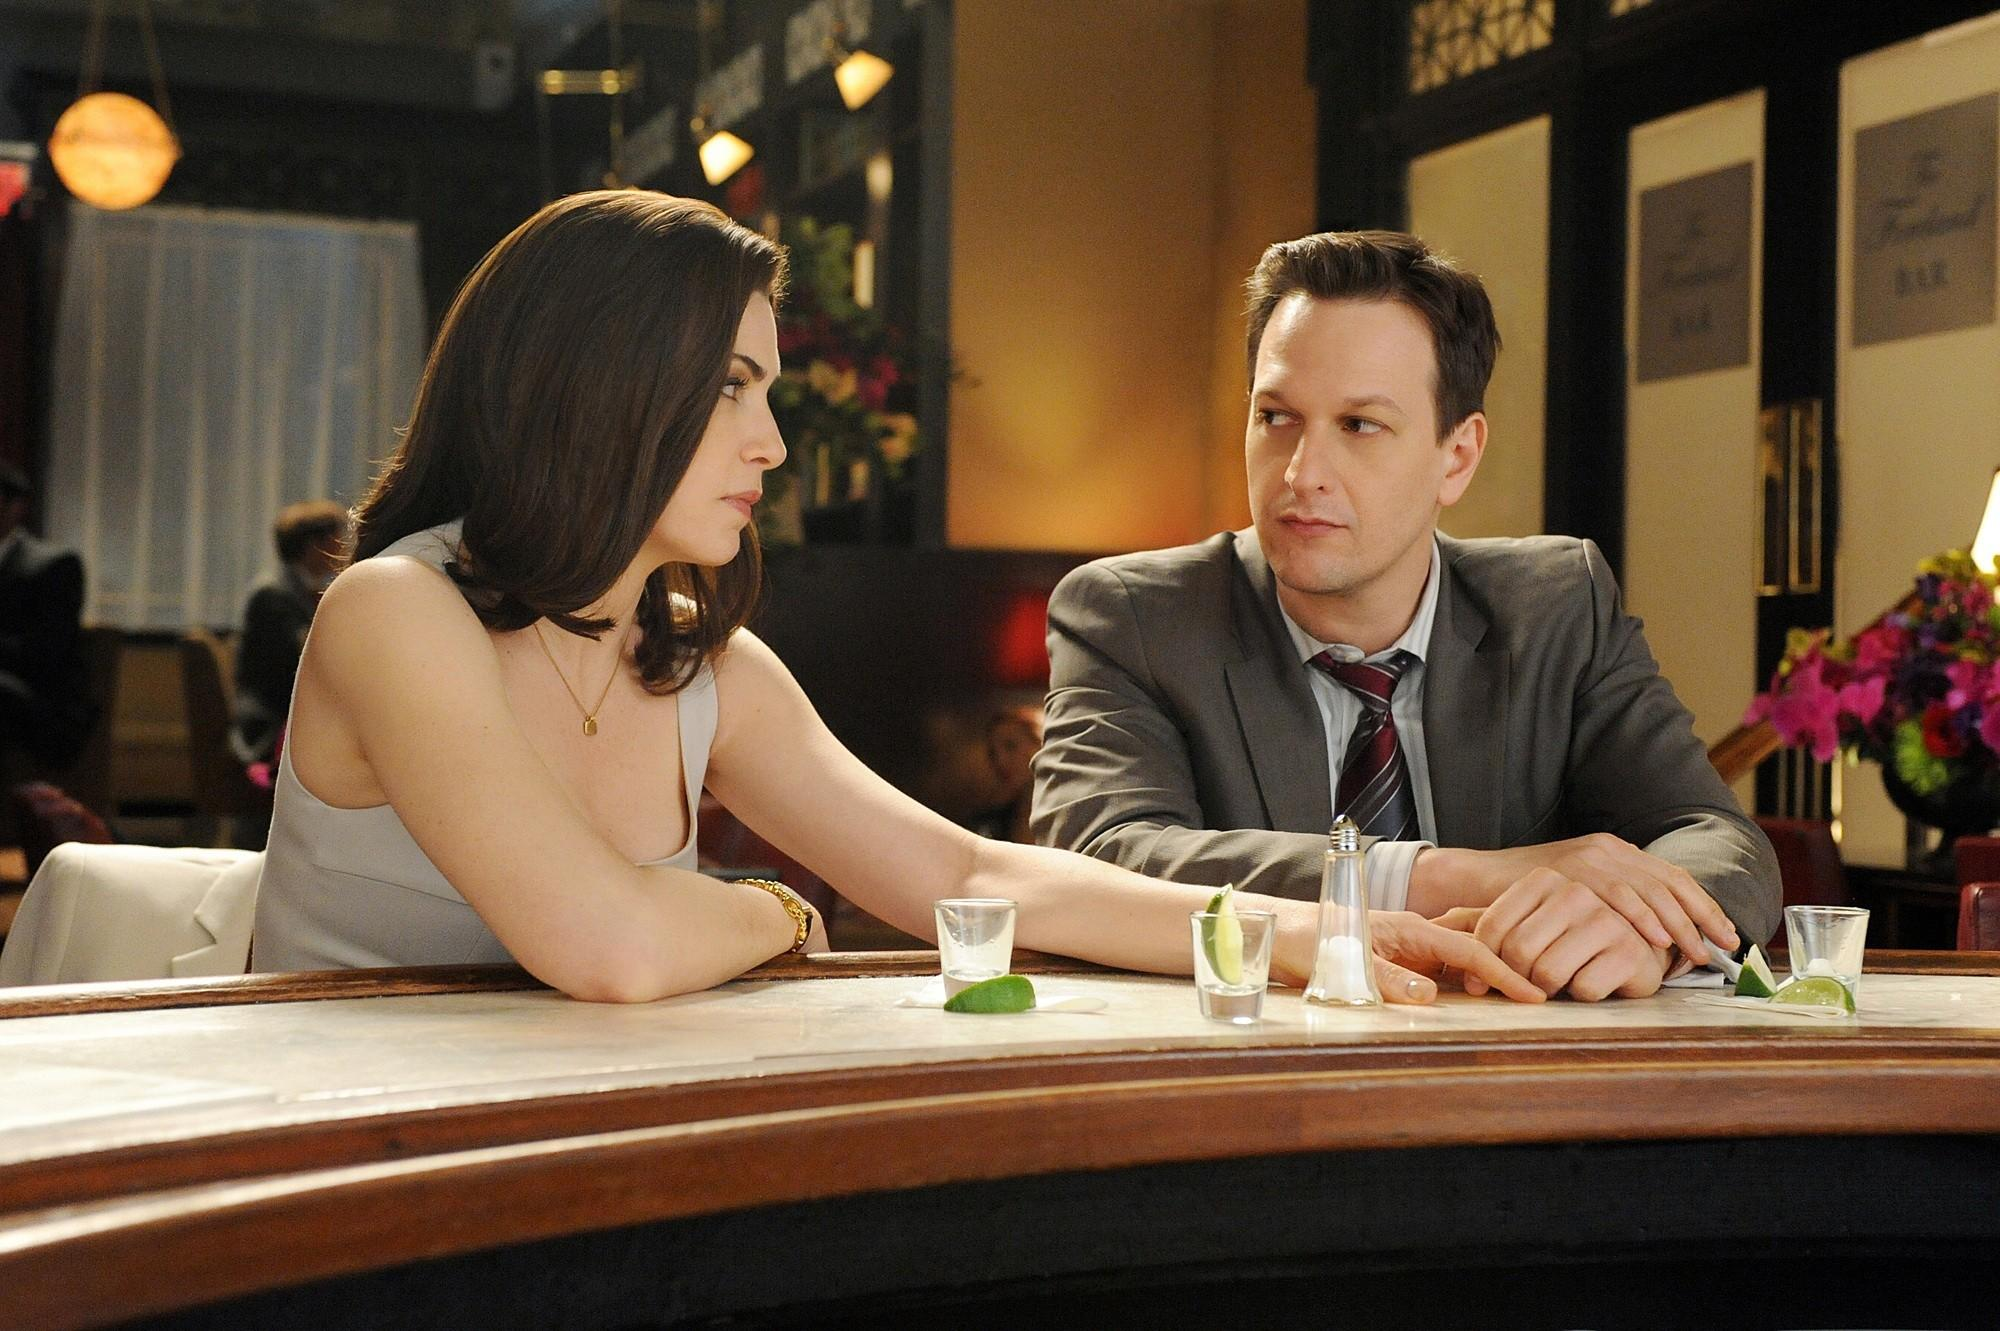 """Will(Josh Charles) and Alicia (Julianna Margulies) from Season 2 of """"The Good Wife."""" Sunday's episode powerfully tapped the poignancy of what might have been for these two."""